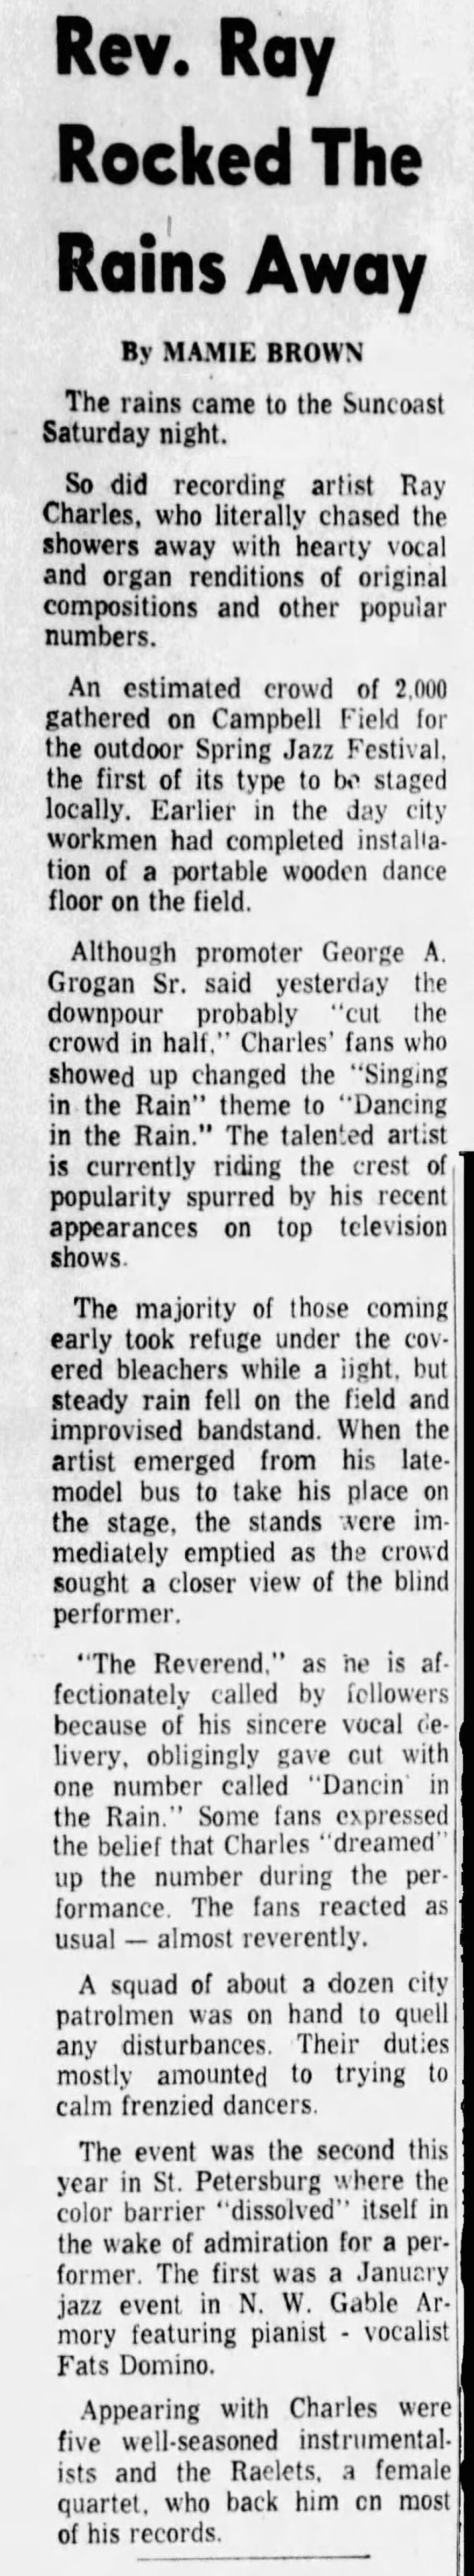 mar._20_1961-spt_story_about_ray_charles_0.jpg